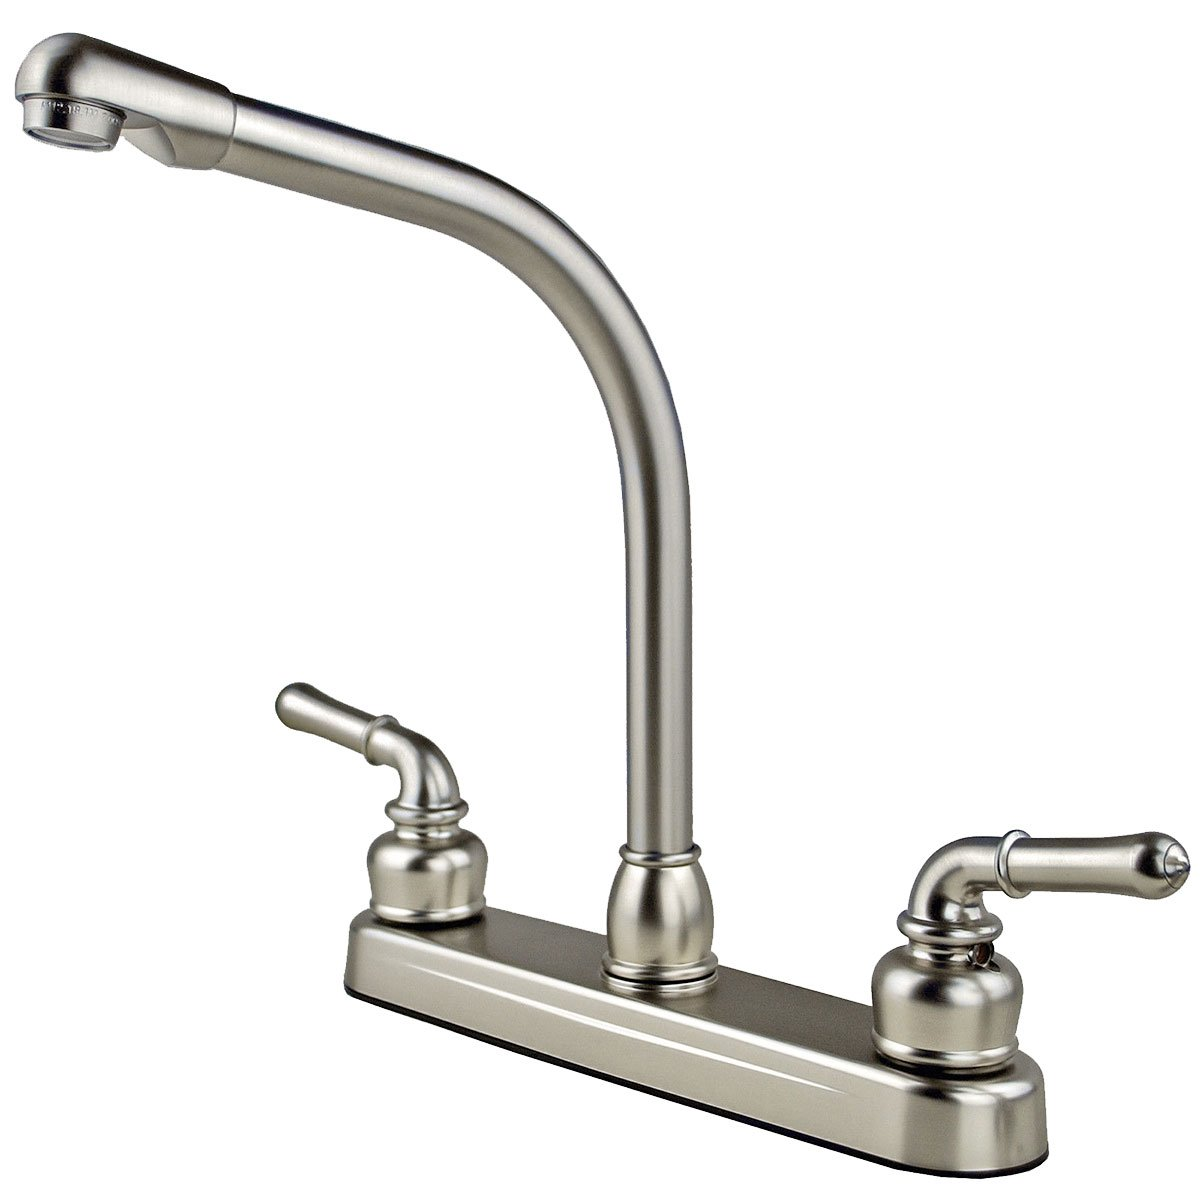 Amazon.com: RV / Mobile Home High Rise Kitchen Sink Faucet ...